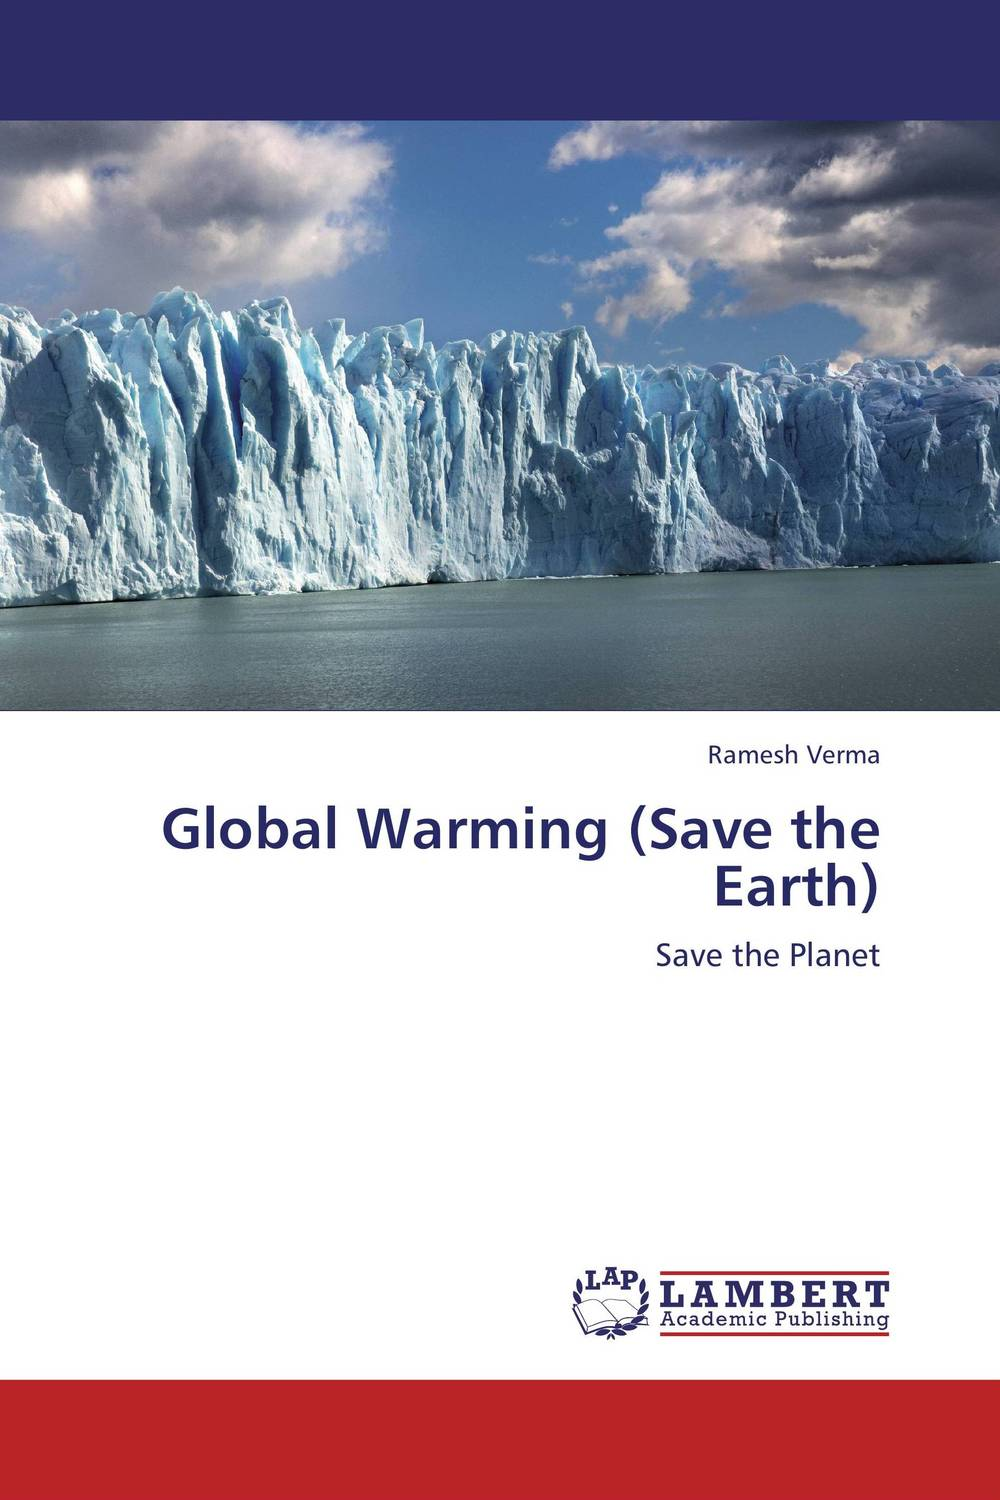 Global Warming (Save the Earth) acid rain global warming depletion of ozone layer